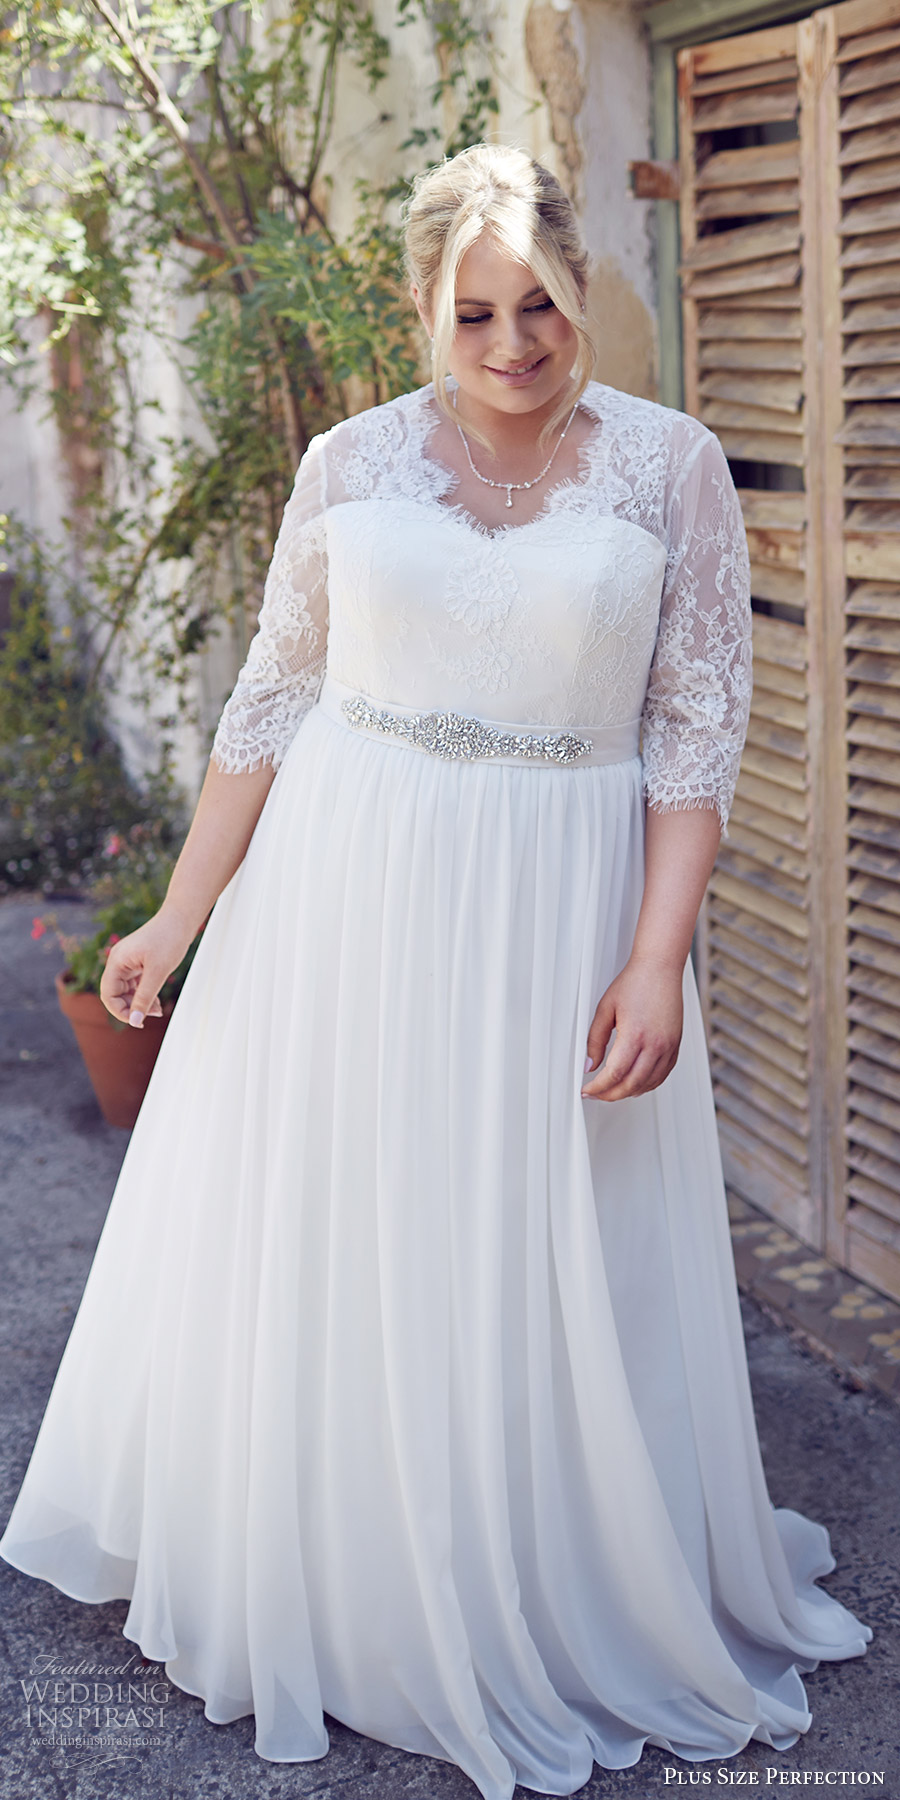 Plus size perfection wedding dresses it s a love story for Wedding dress big size